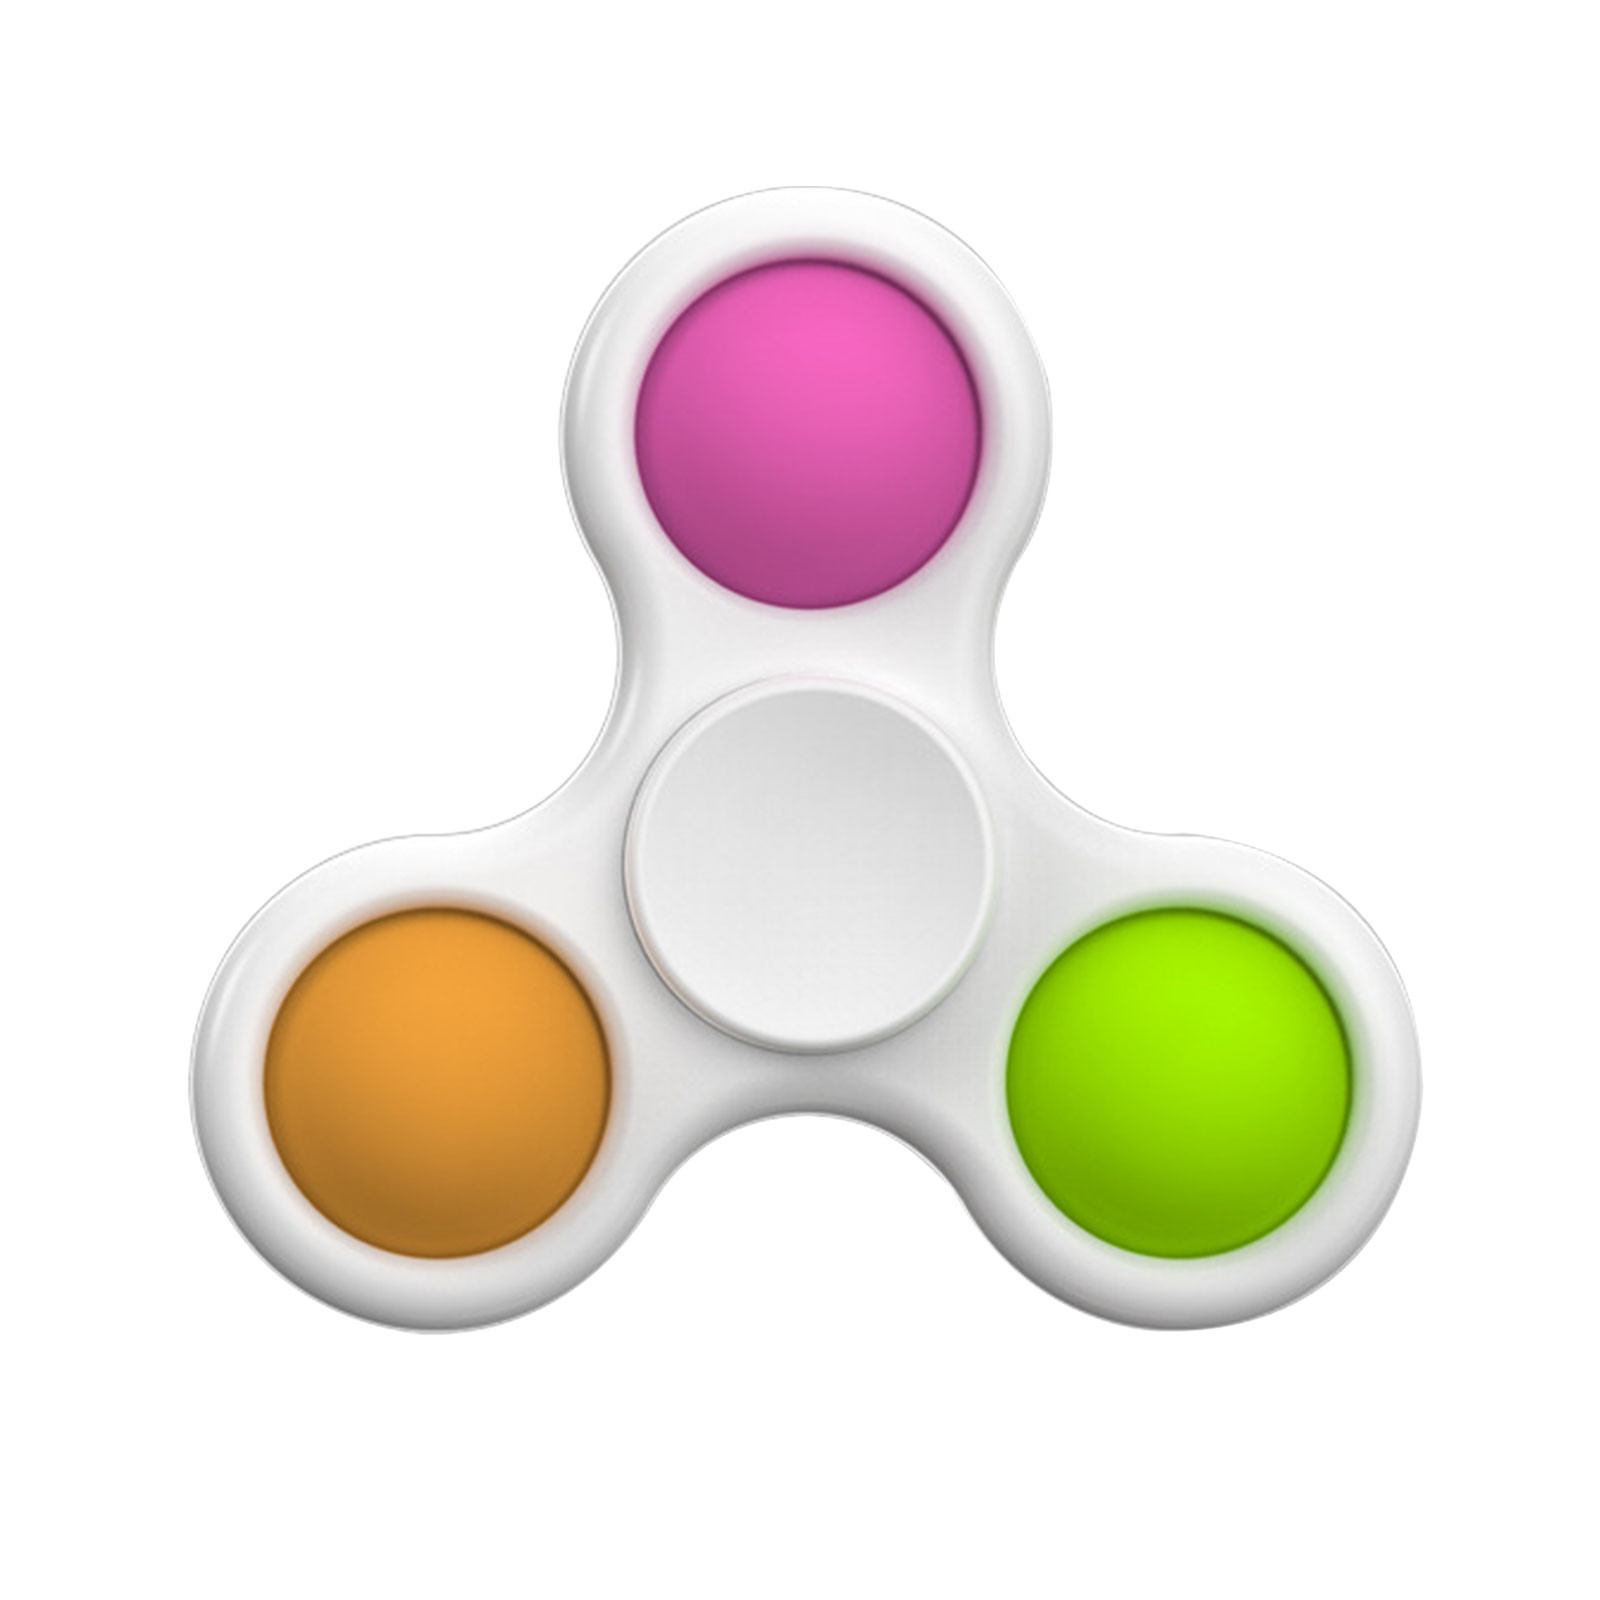 Fidget-Toy Popit Mini Dimple Adult Children Toy-Pressure Reliever Creative Board Controller img3